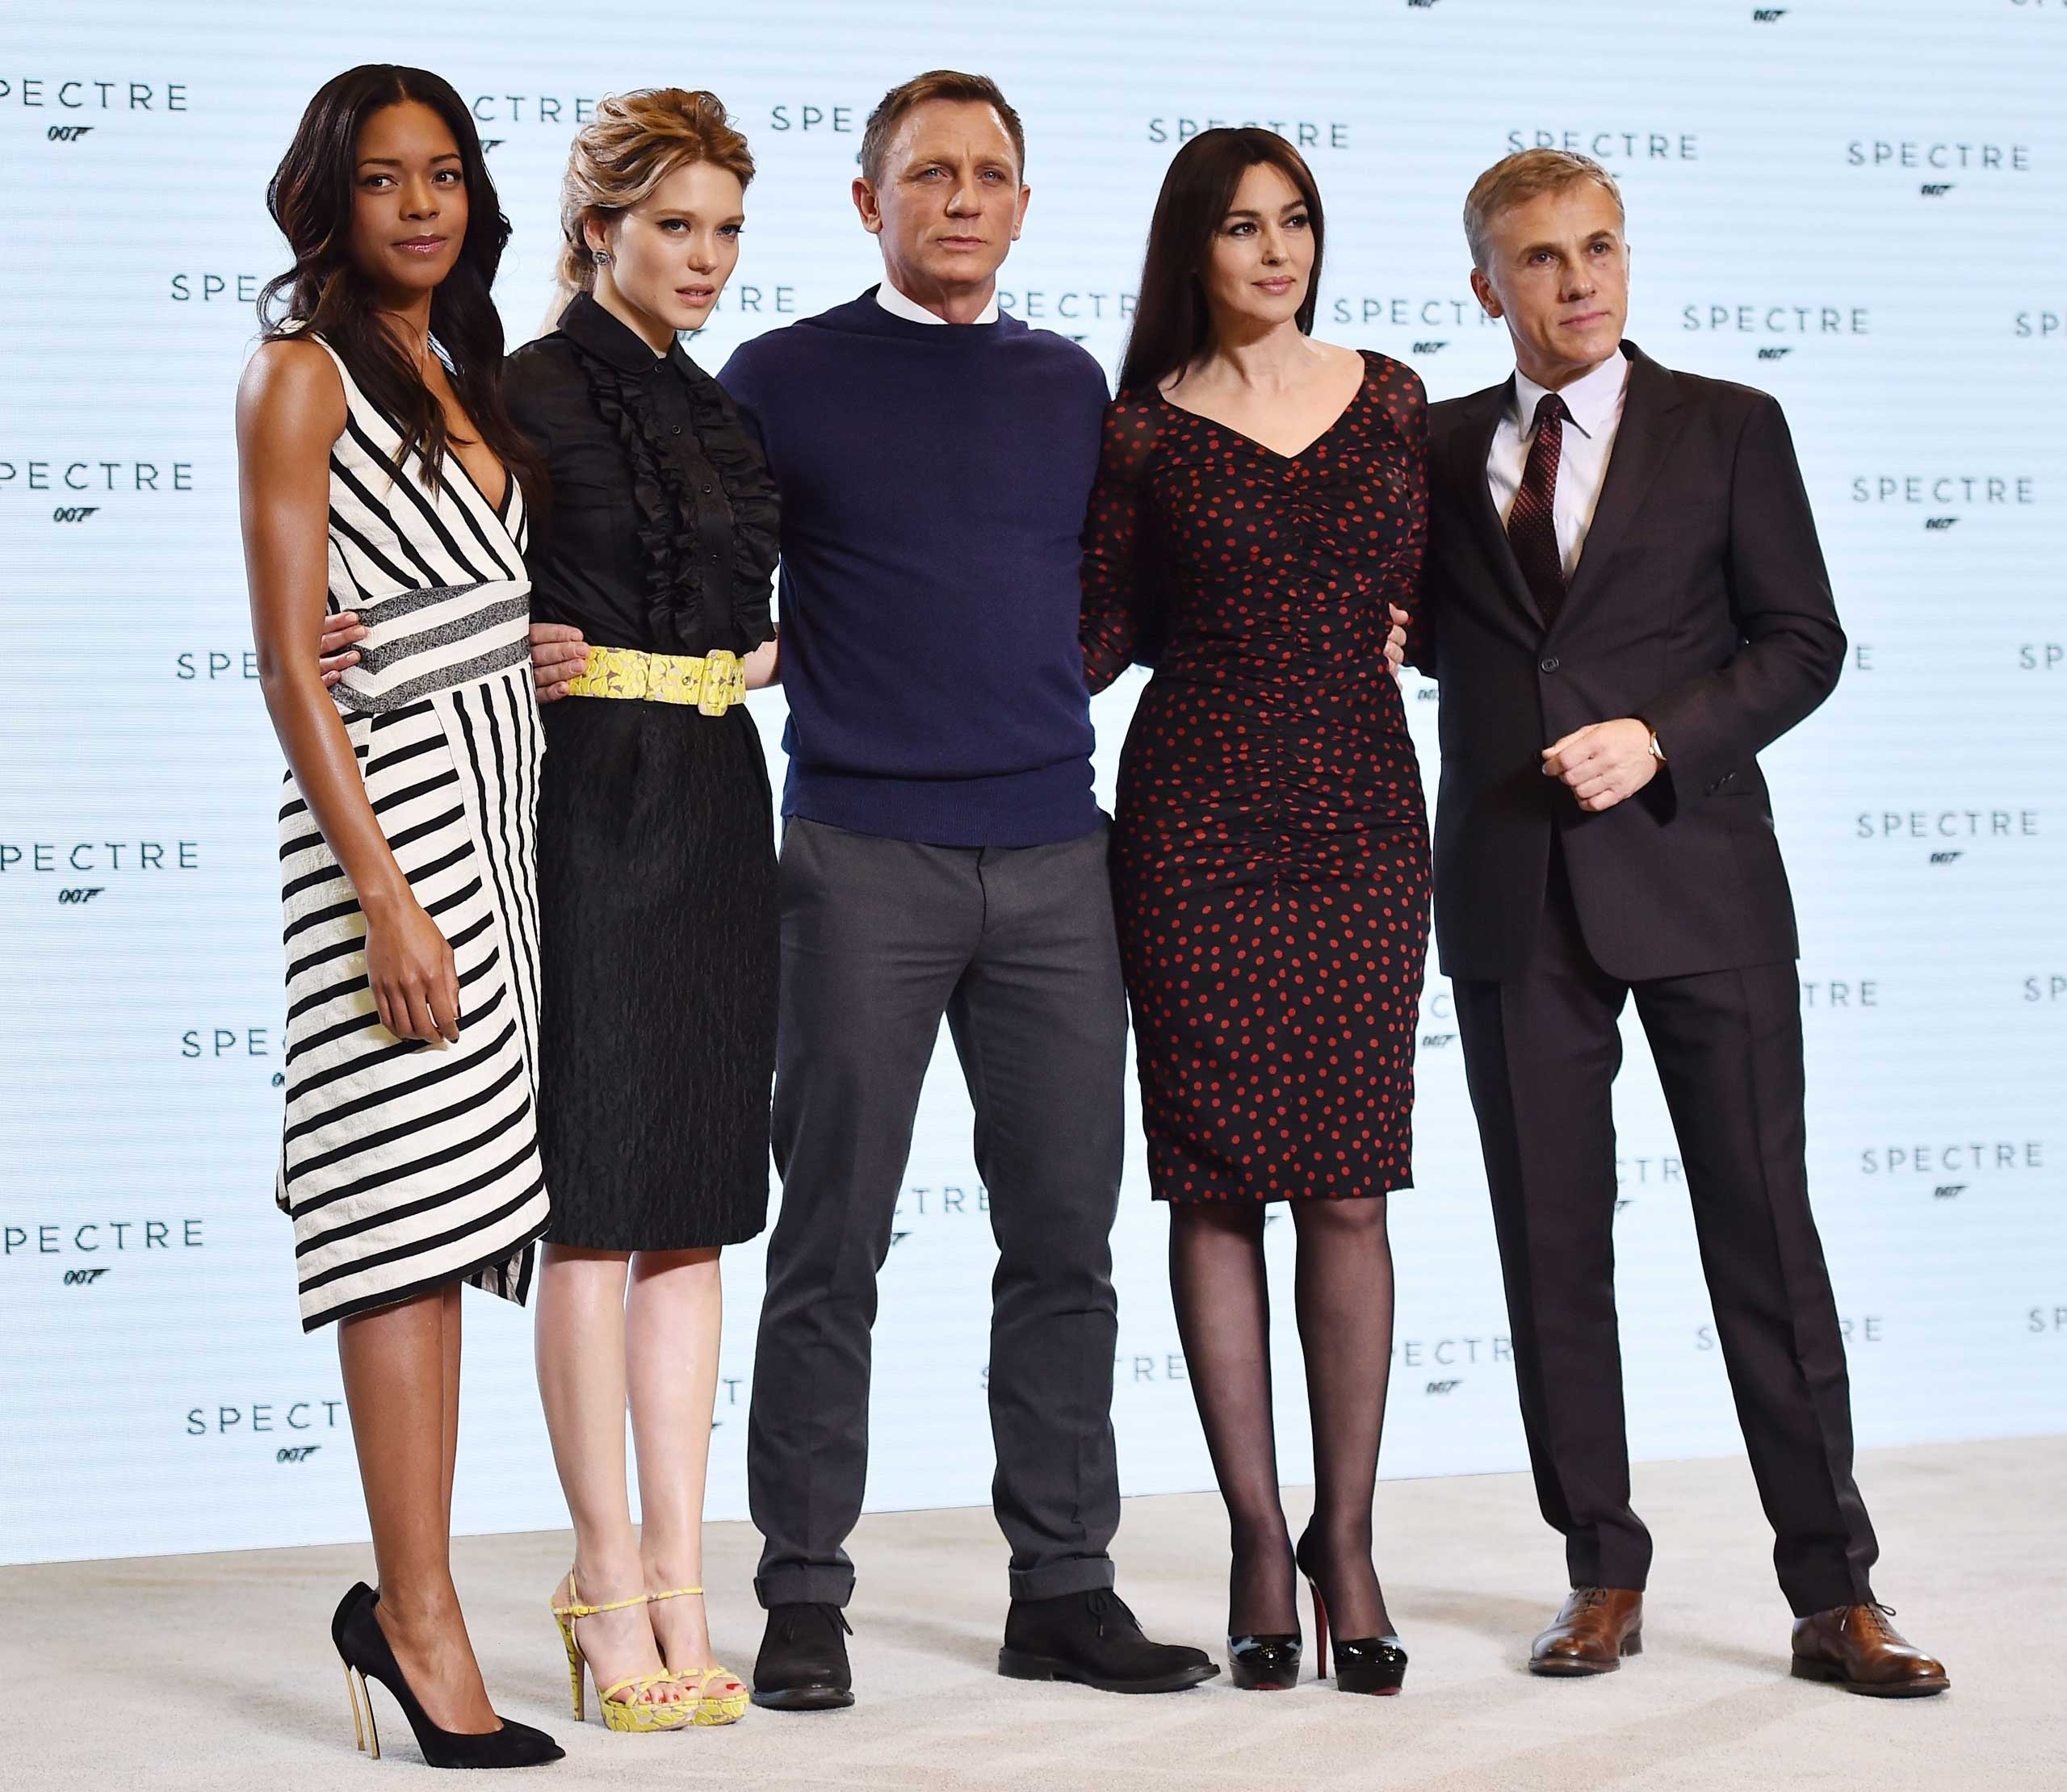 The cast of the 24th James Bond film 'Spectre' pose at Pinewood Studios in Buckinghamshire, west of London, on Dec. 4, 2014.